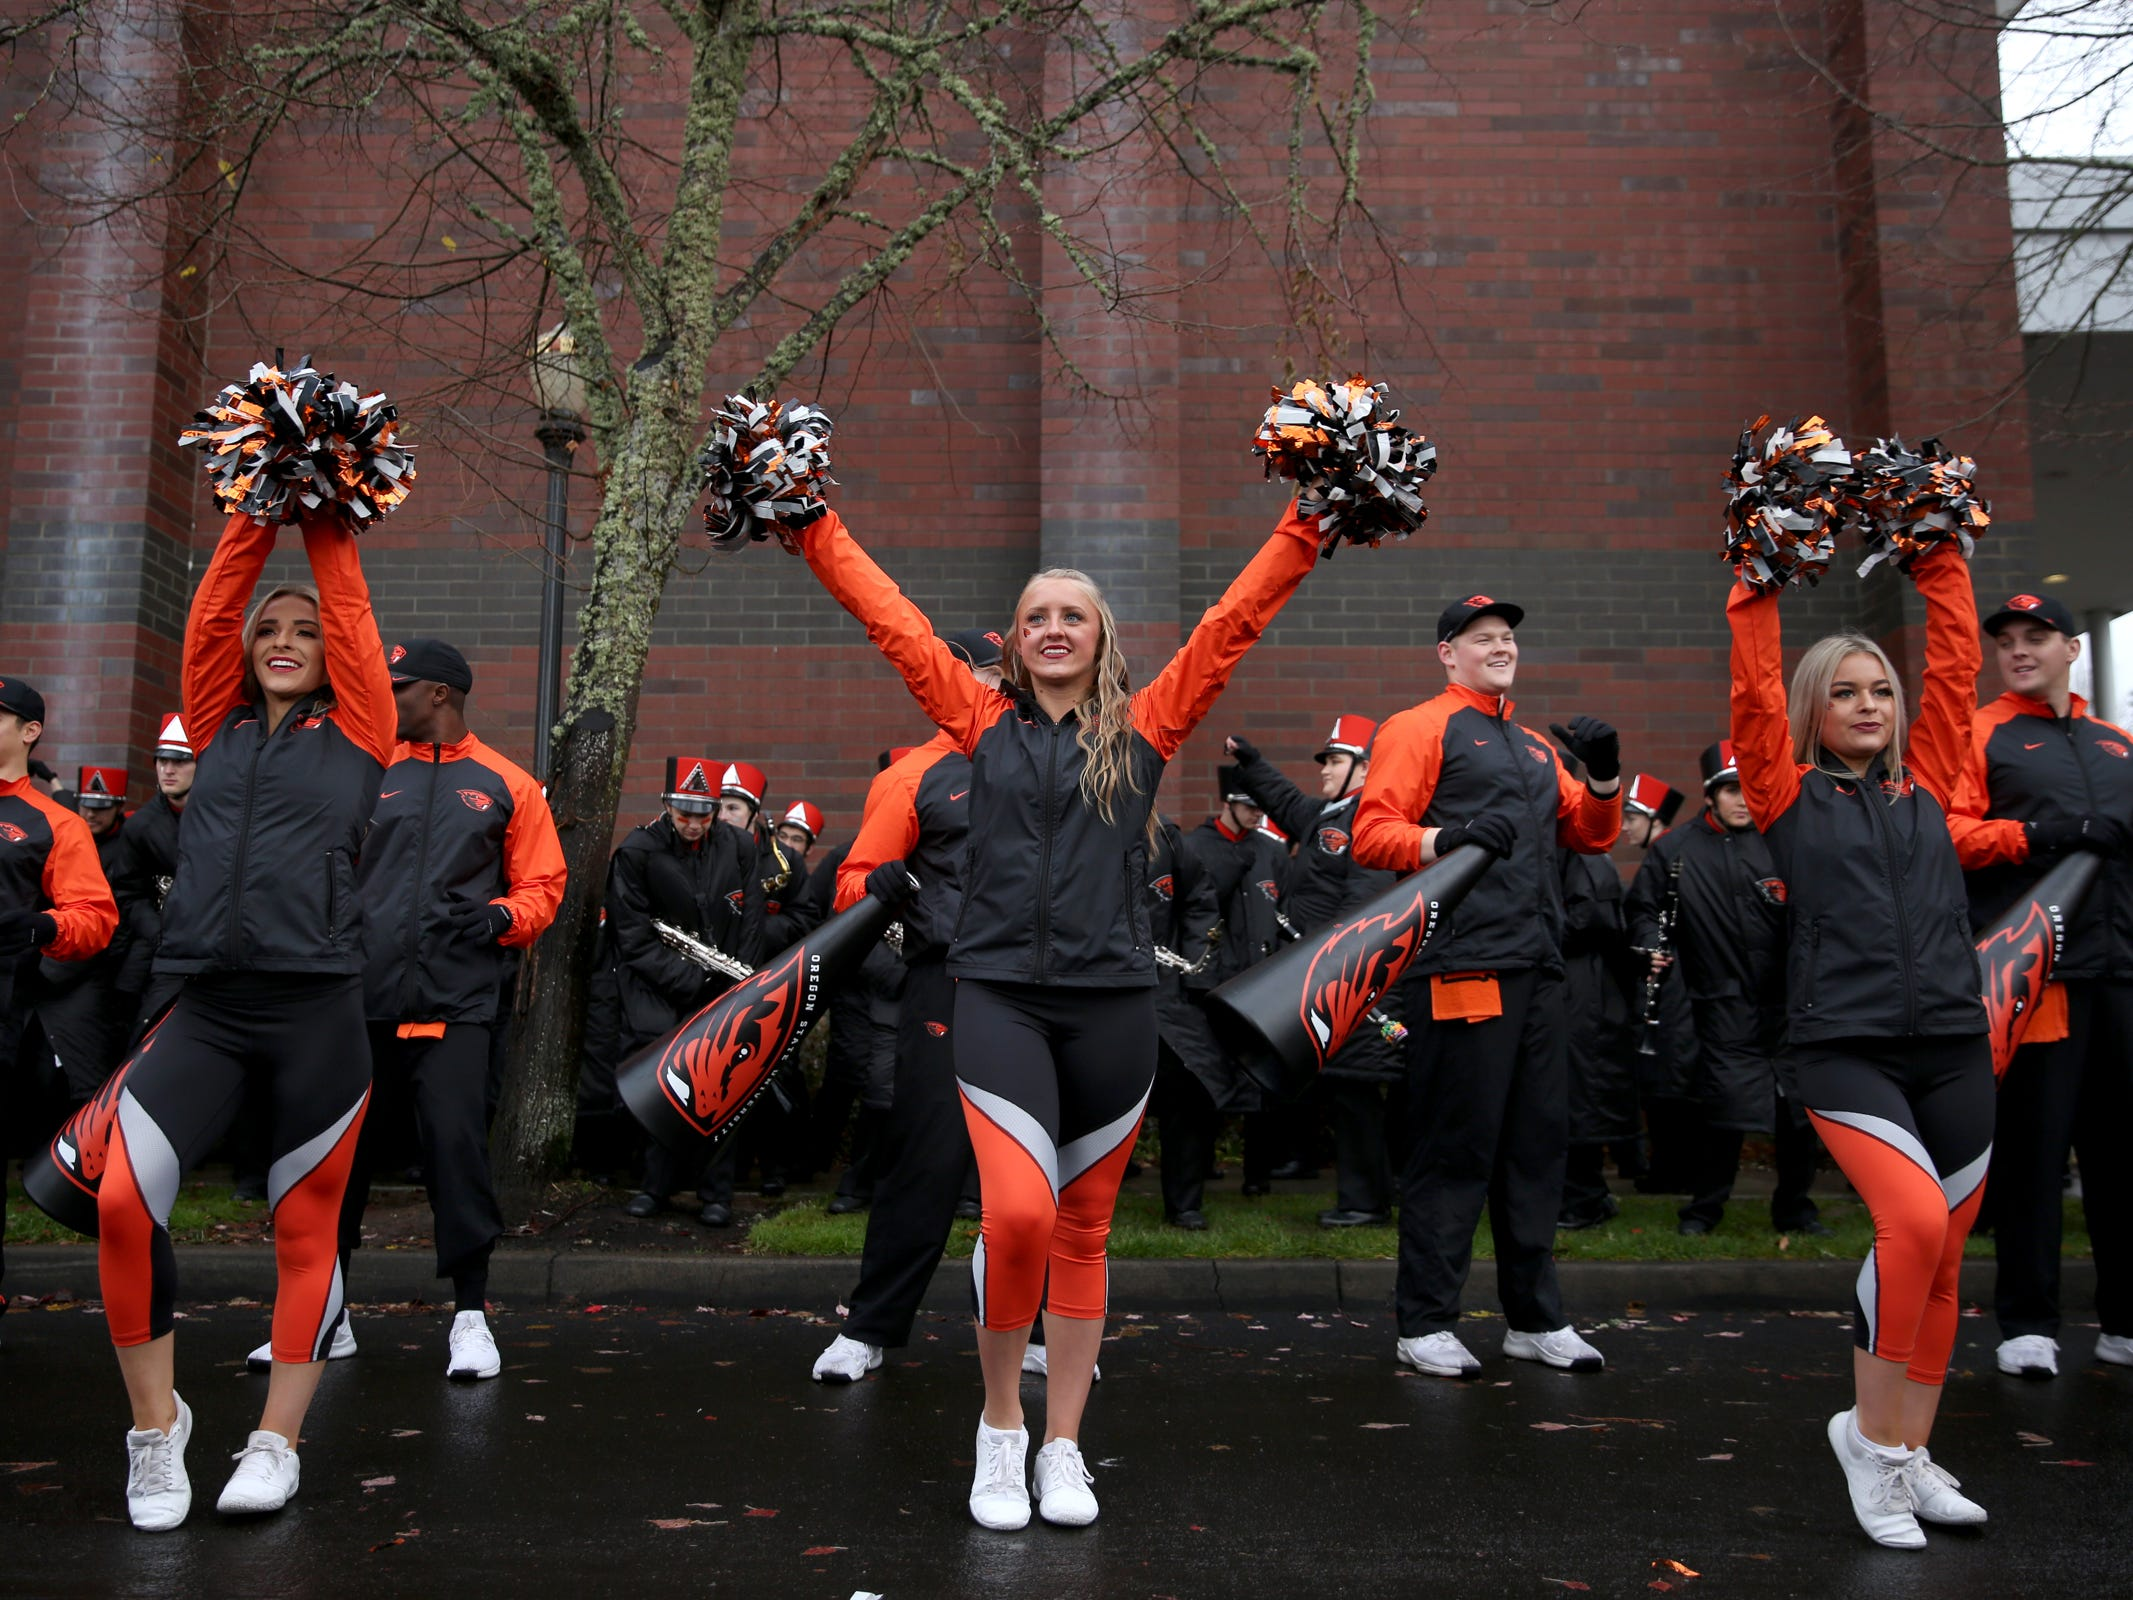 The Oregon State cheerleaders and marching band perform before the start of the Oregon vs. Oregon State Civil war football game at Oregon State University in Corvallis on Friday, Nov. 23, 2018.